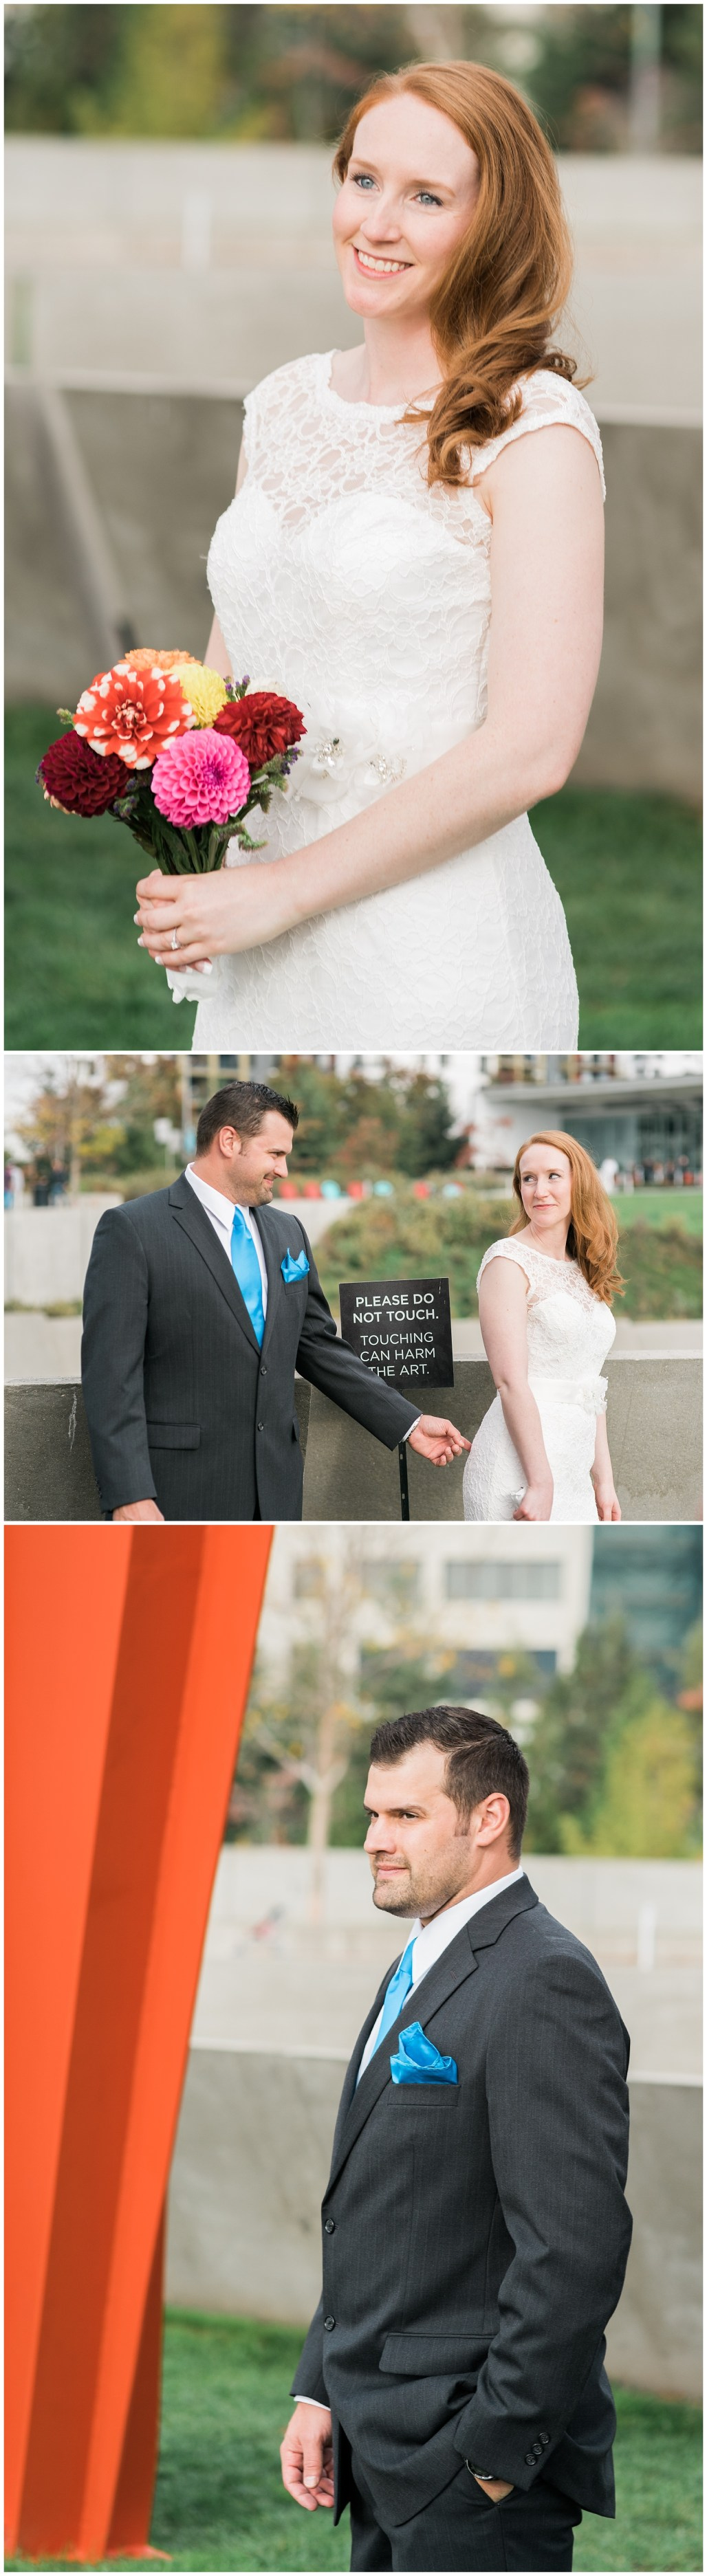 Municipal Courthouse, Seattle Destination Wedding Photographer, Seattle Elopement, Jenny Storment, Inn at the Market, Seattle Water Front, Pikes Market, Sculpture Park, Seattle, Seattle Ferry, Wedding Photographer, Seattle Roof Views, Pikes Market, Pikes Market Flowers,